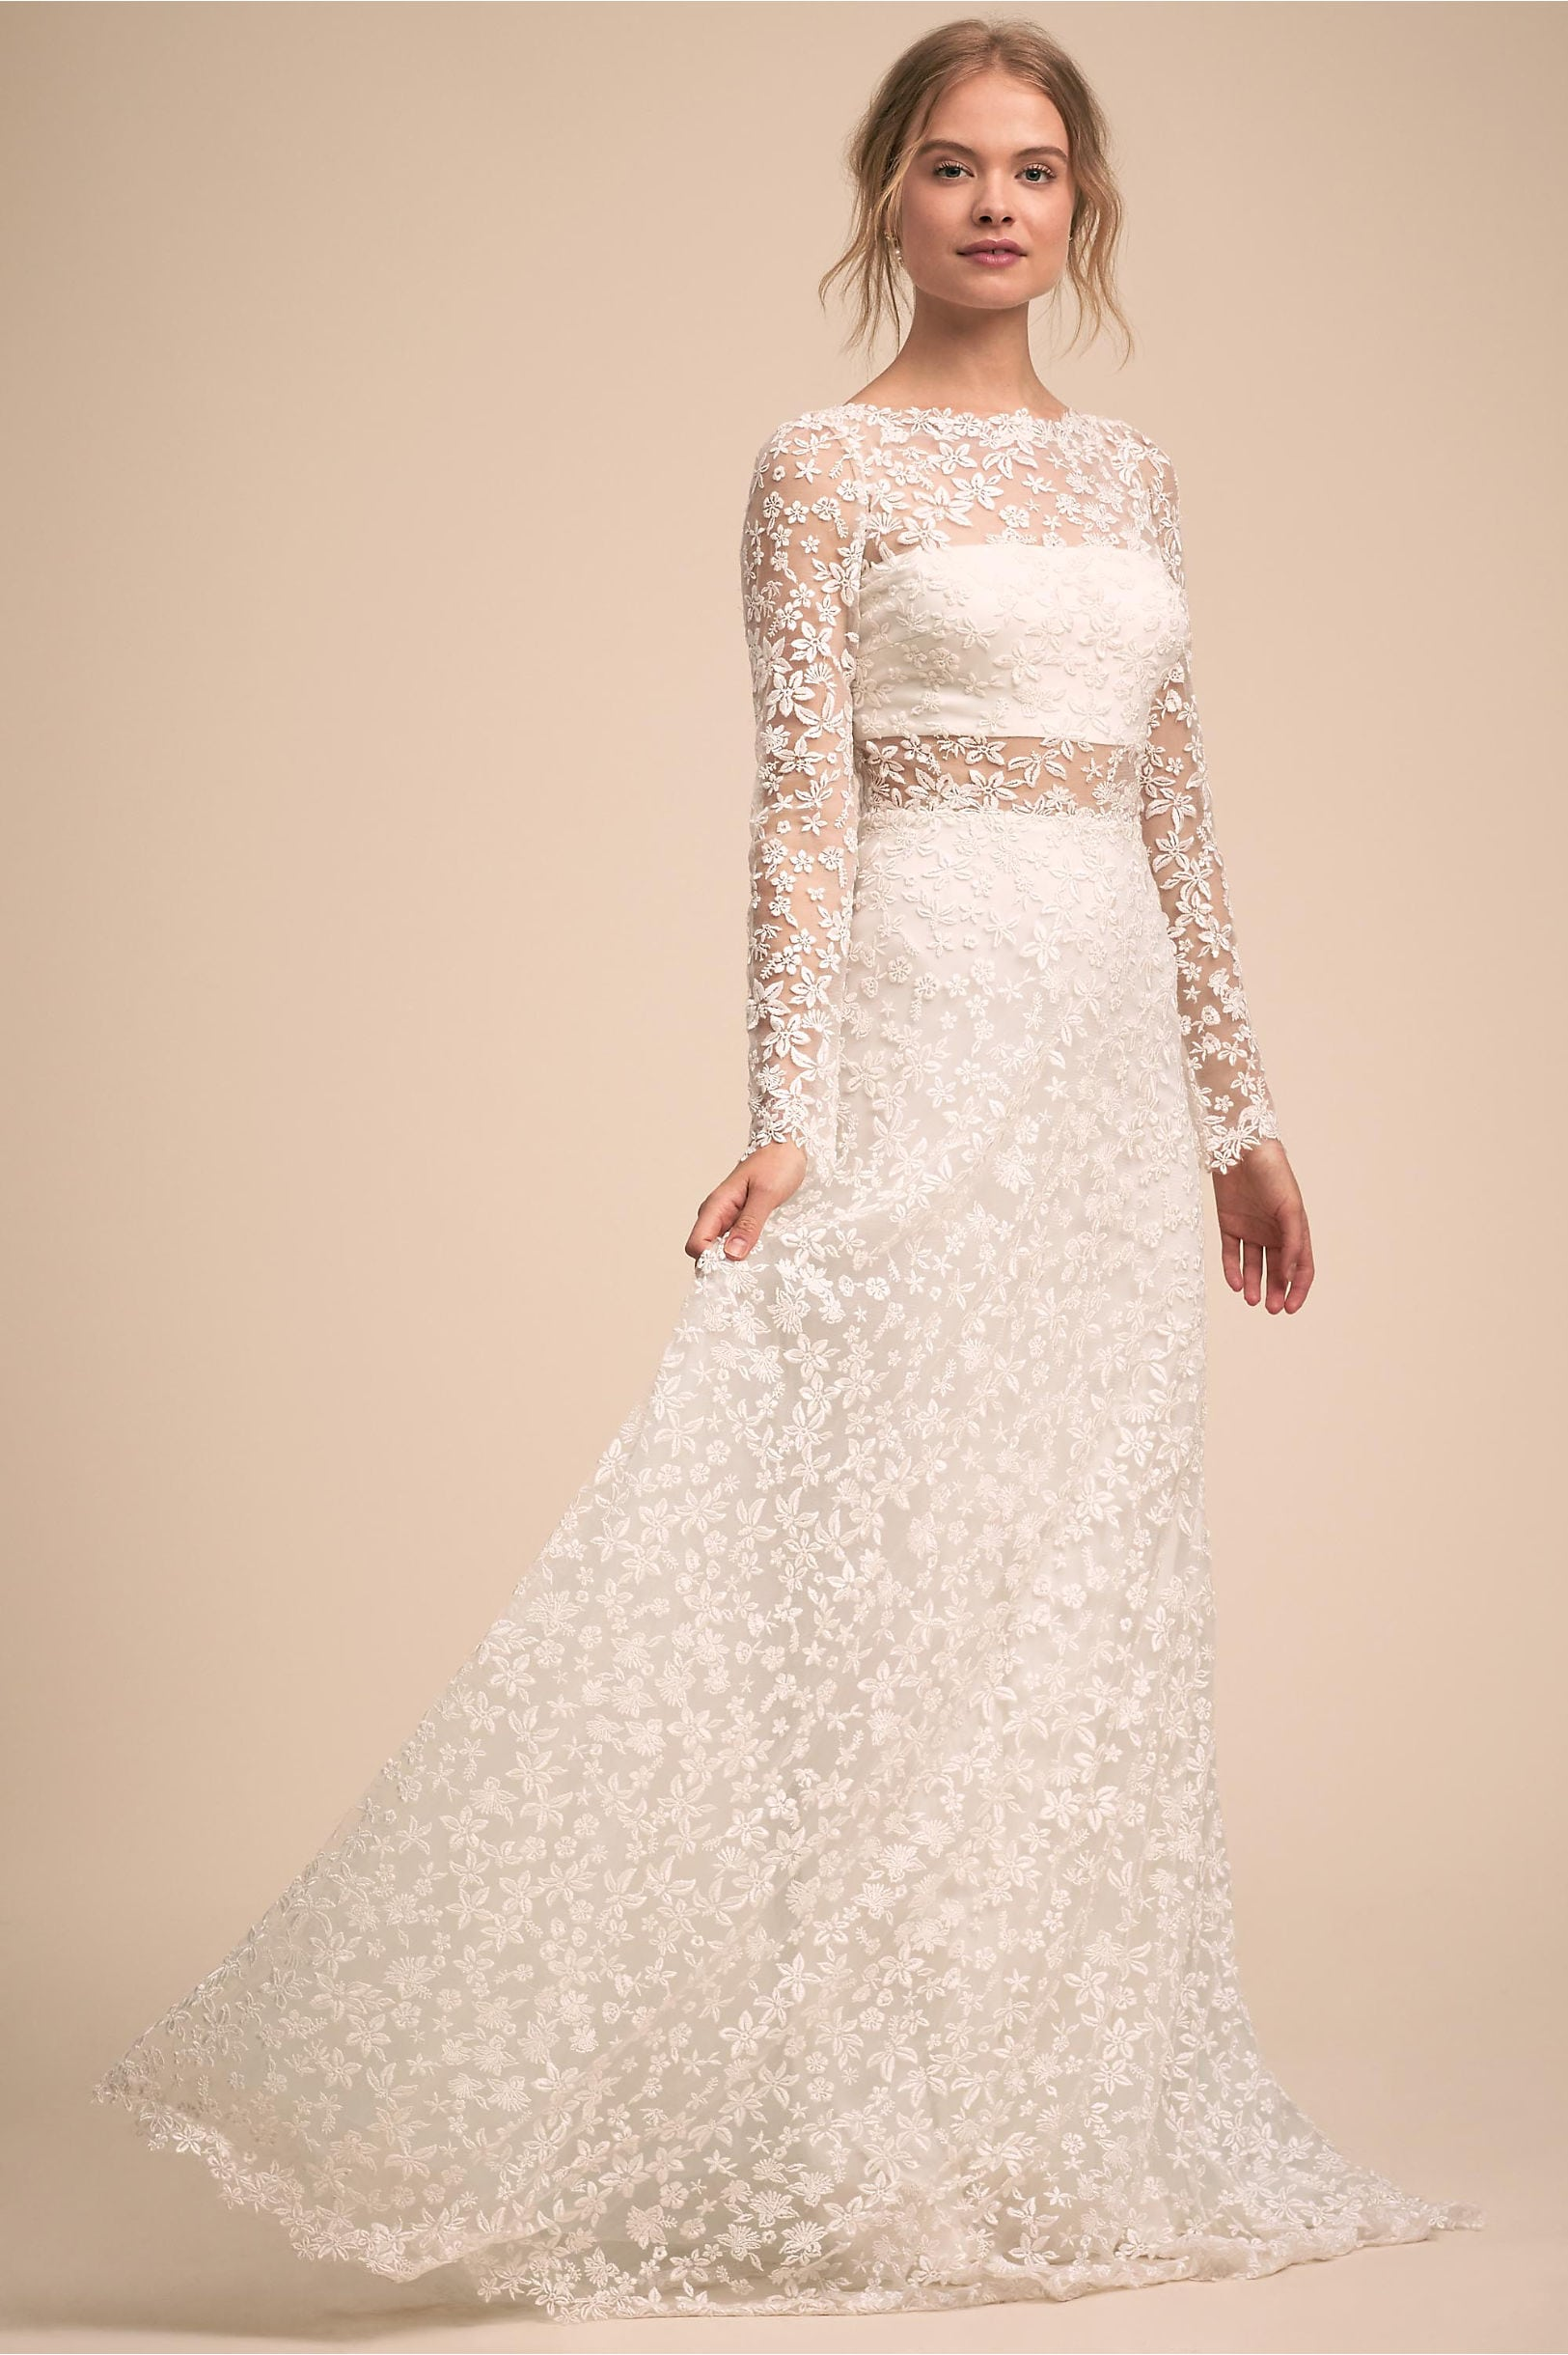 491c082c5865c Cellestine Gown: white dress with floral appliqué long sleeve overlay over  tube top with A